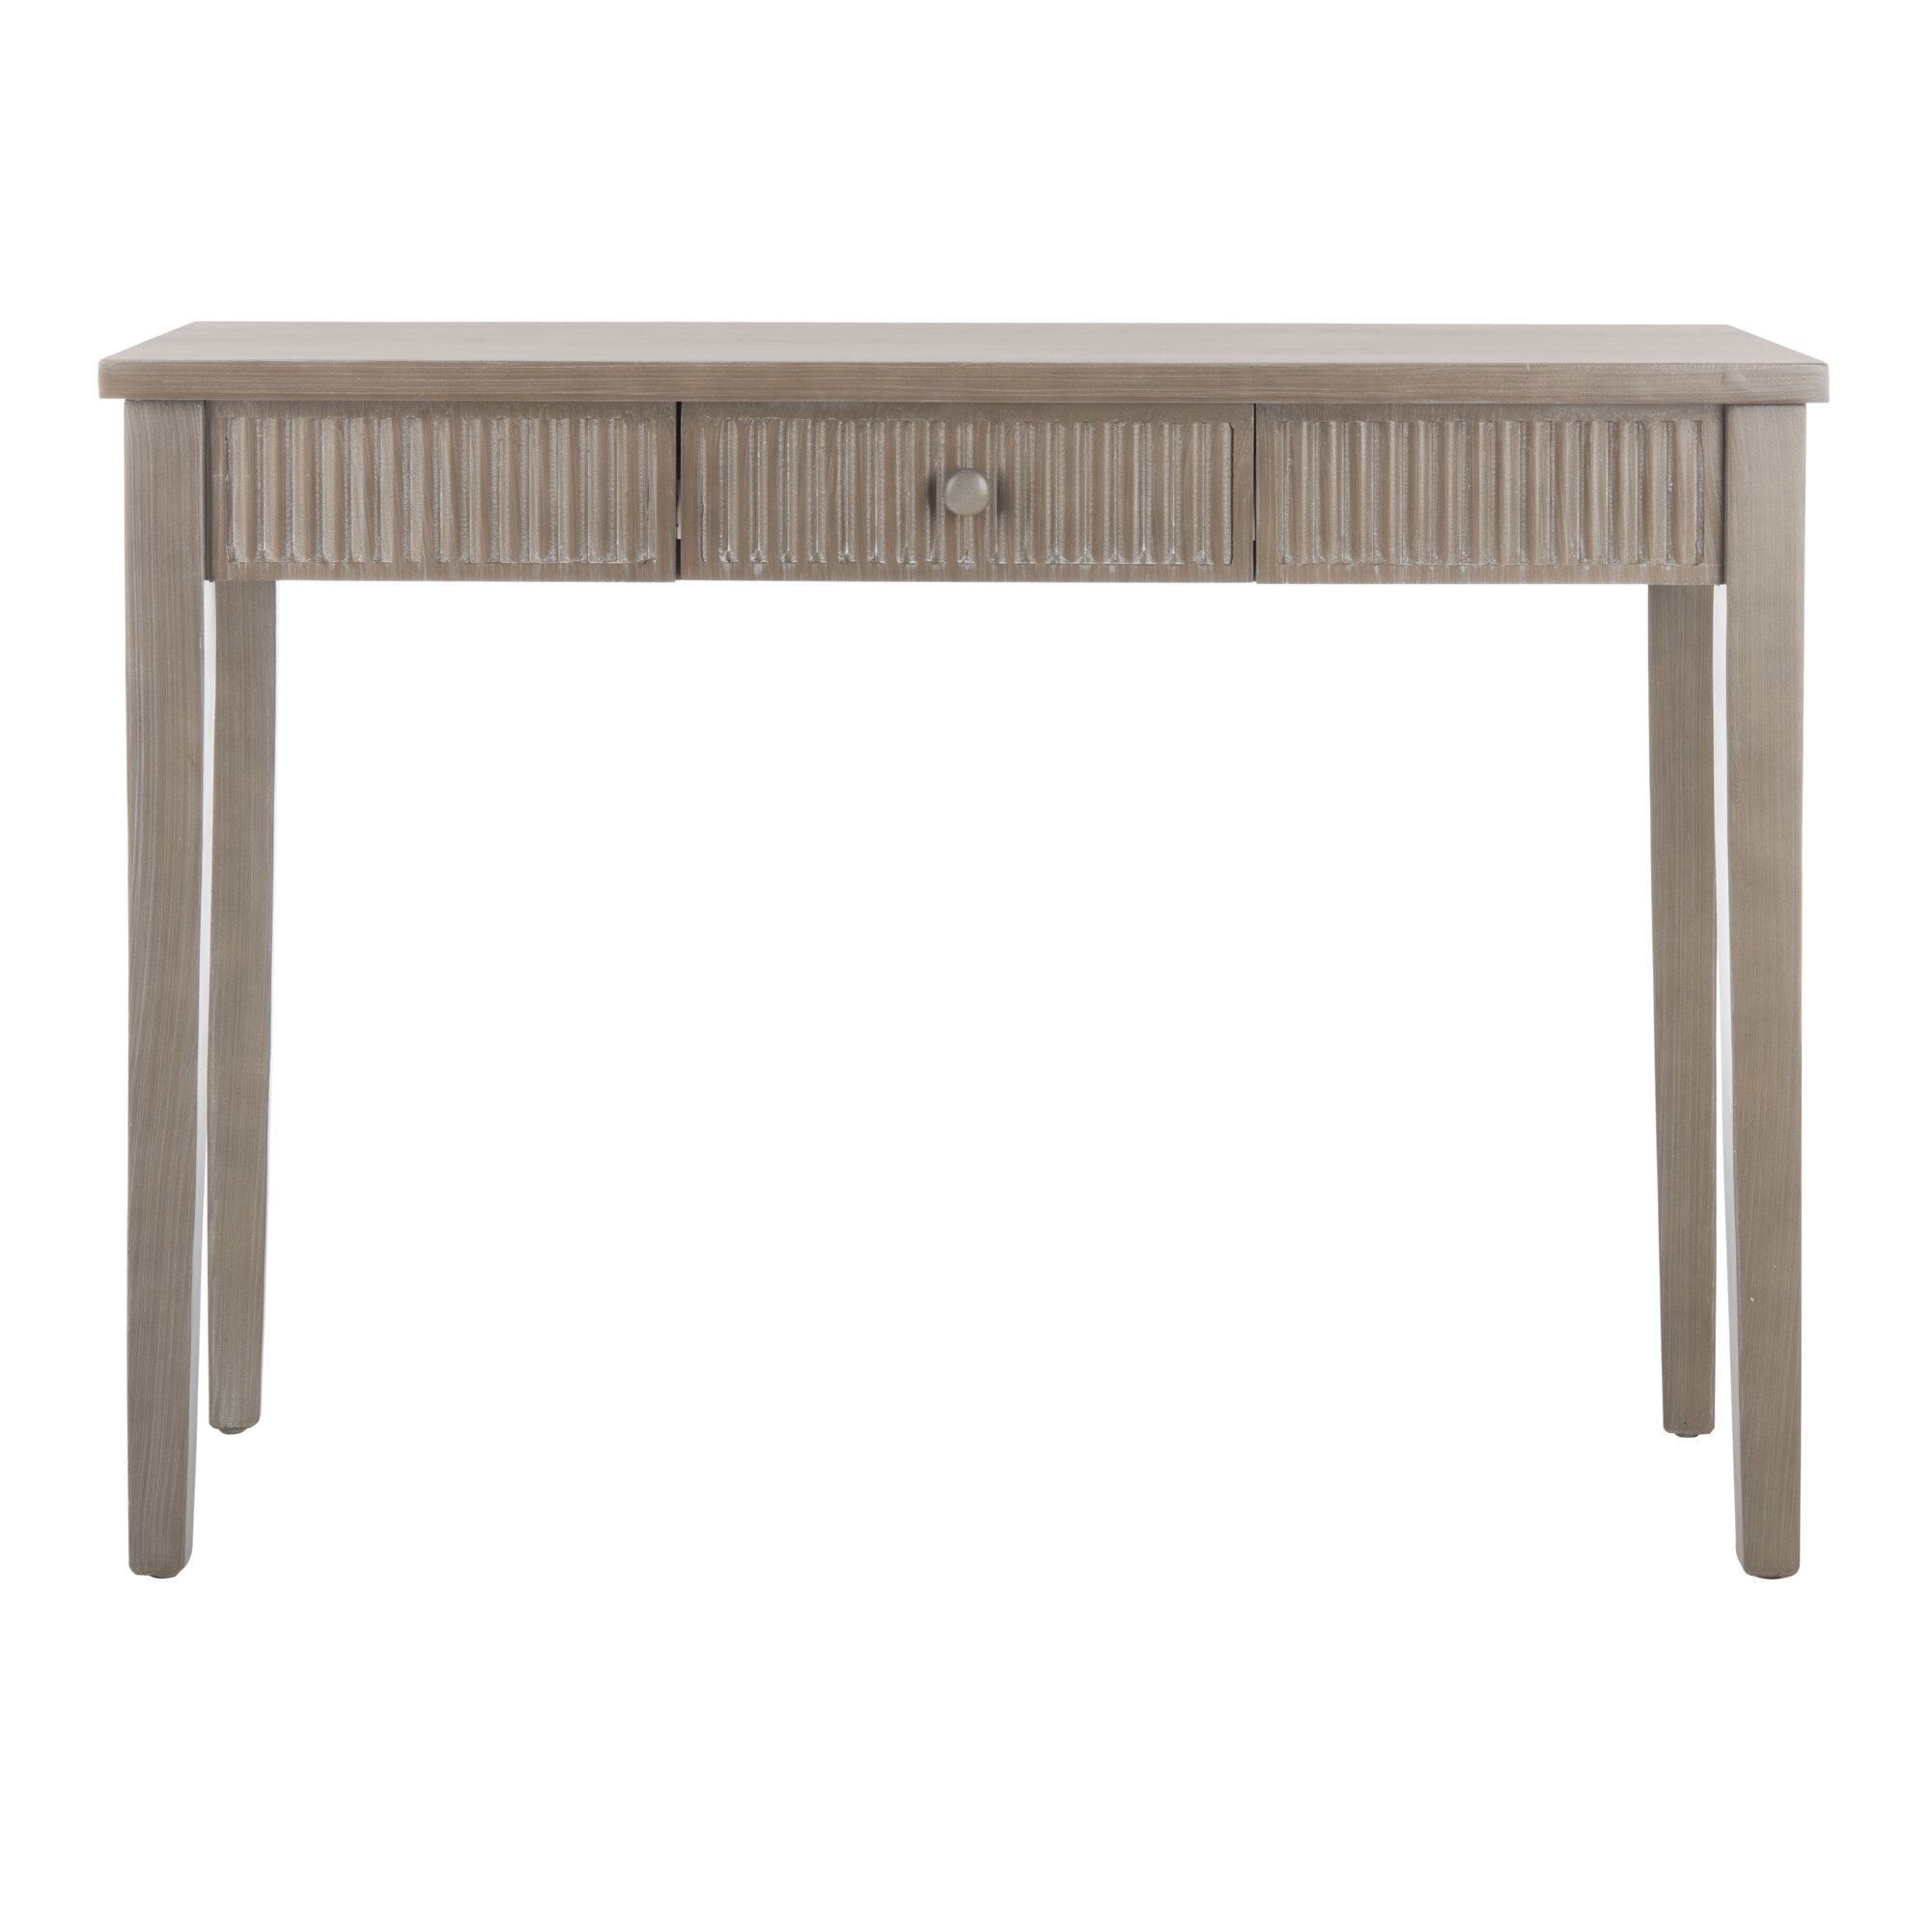 Highland Dunes 43 25 Console Table Reviews Wayfair